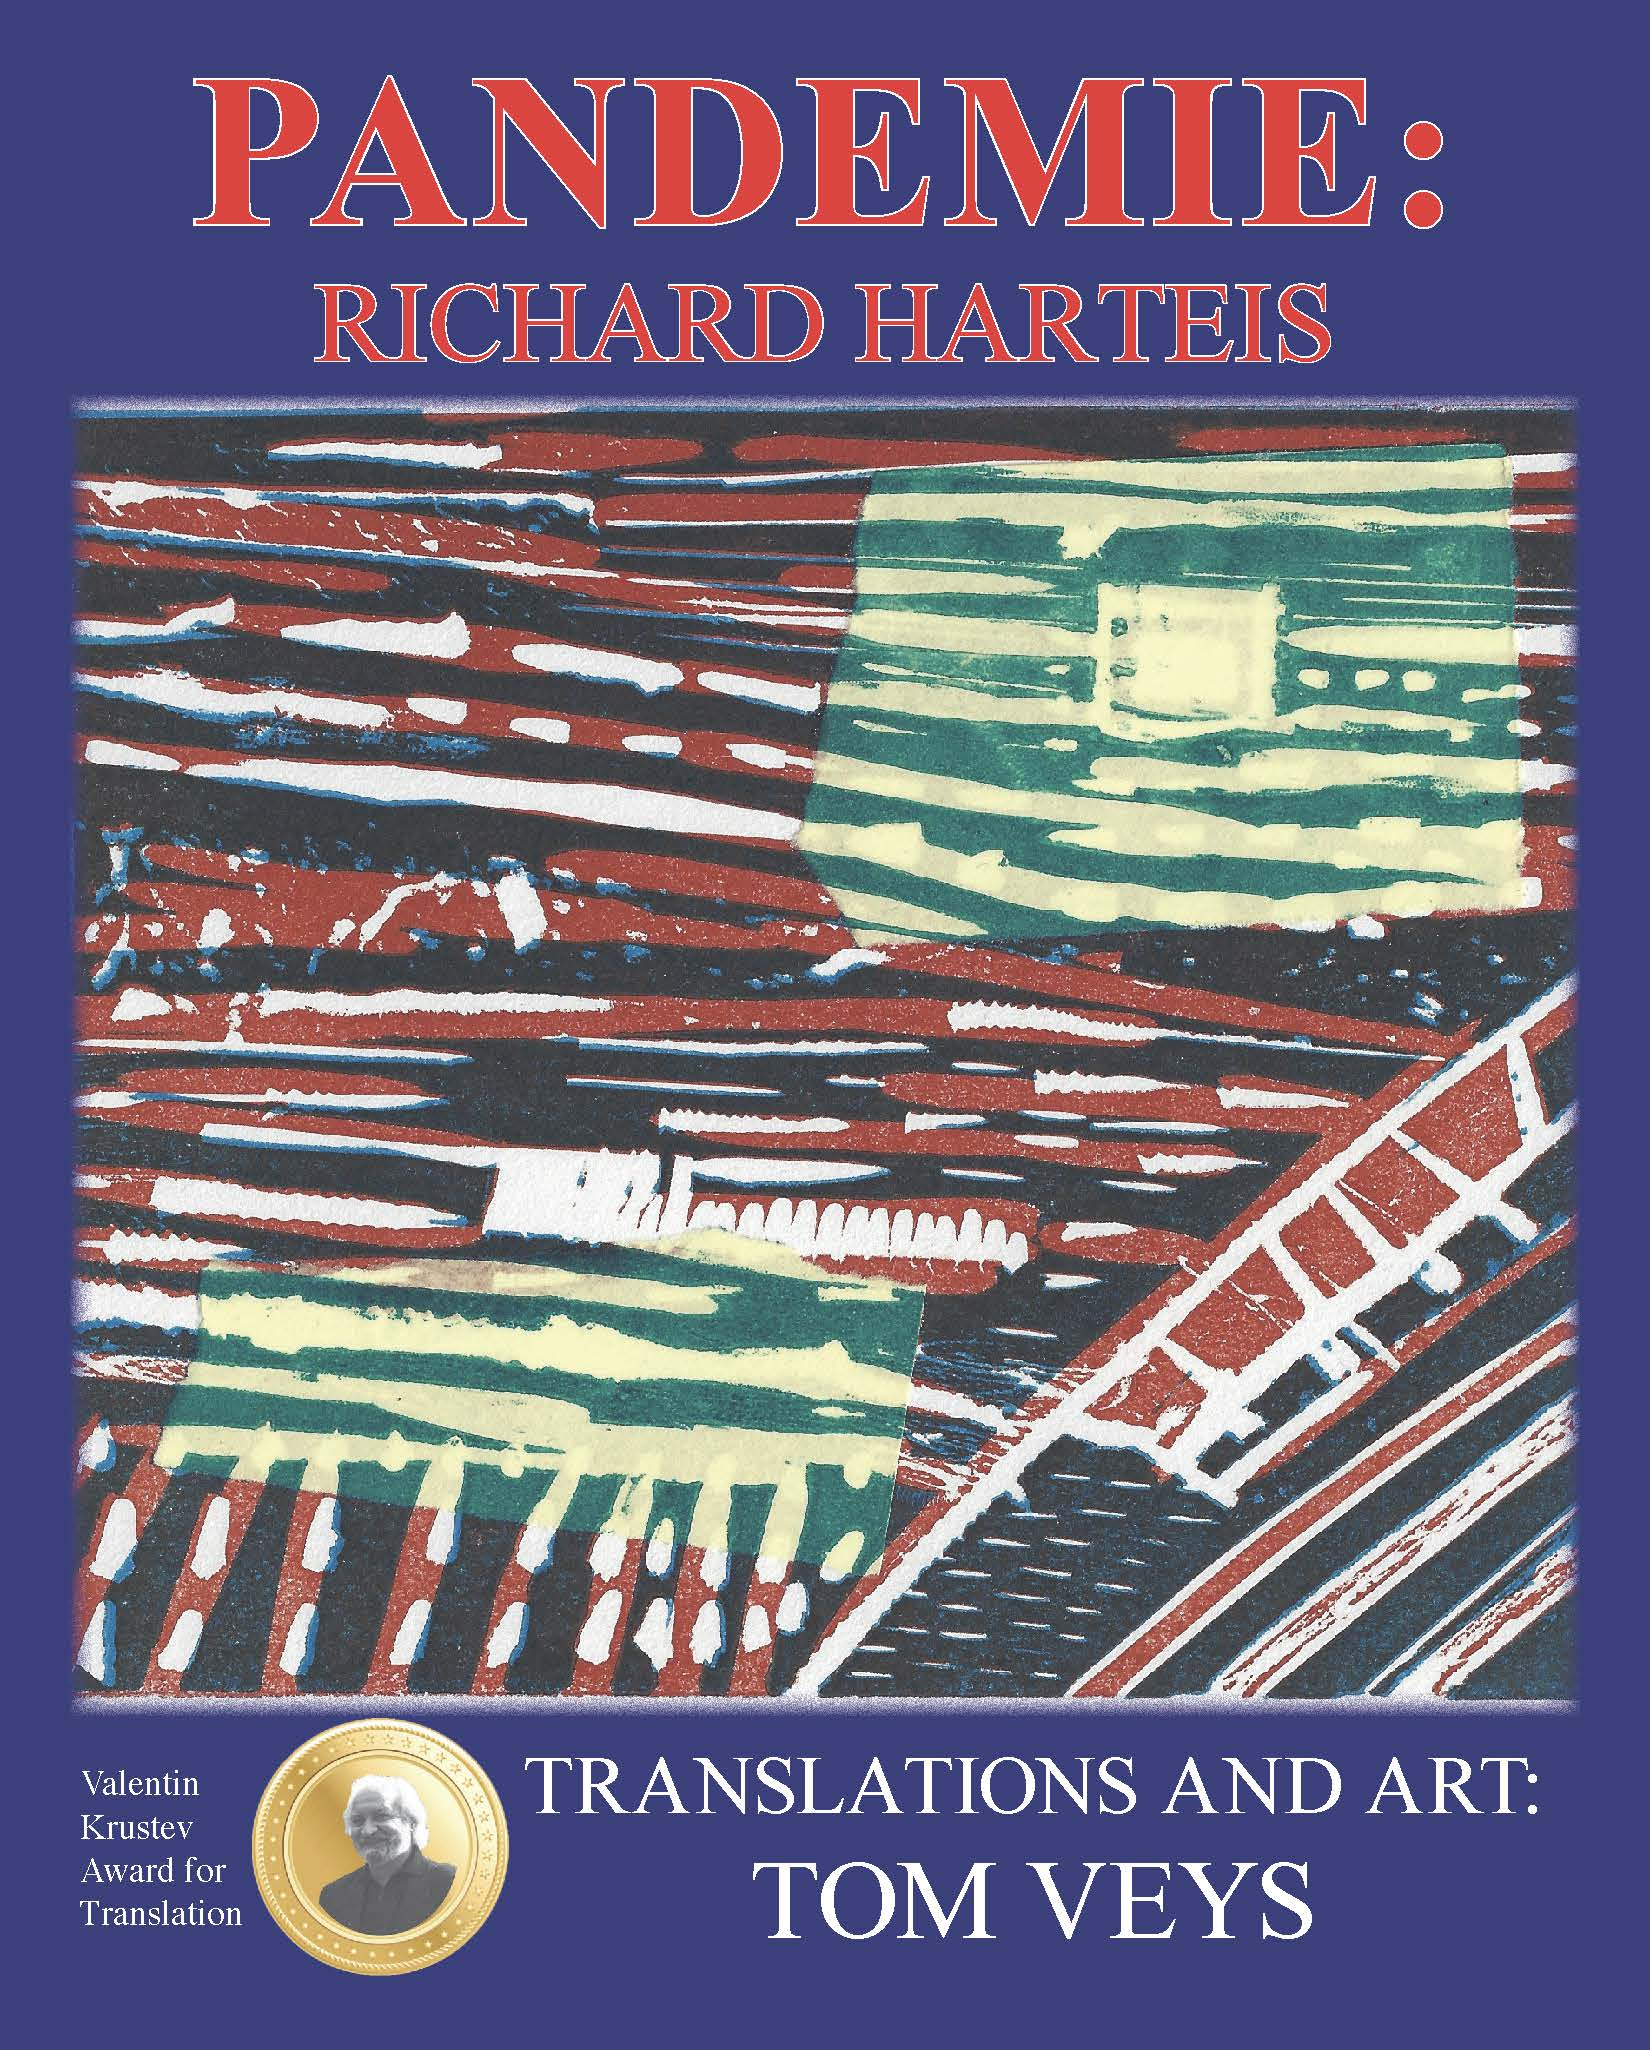 Poets' Choice is Proud to Announce the Publication of PANDEMIE, New and Selected Poems by Richard Harteis with Dutch Translations and New Art by Tom Veys